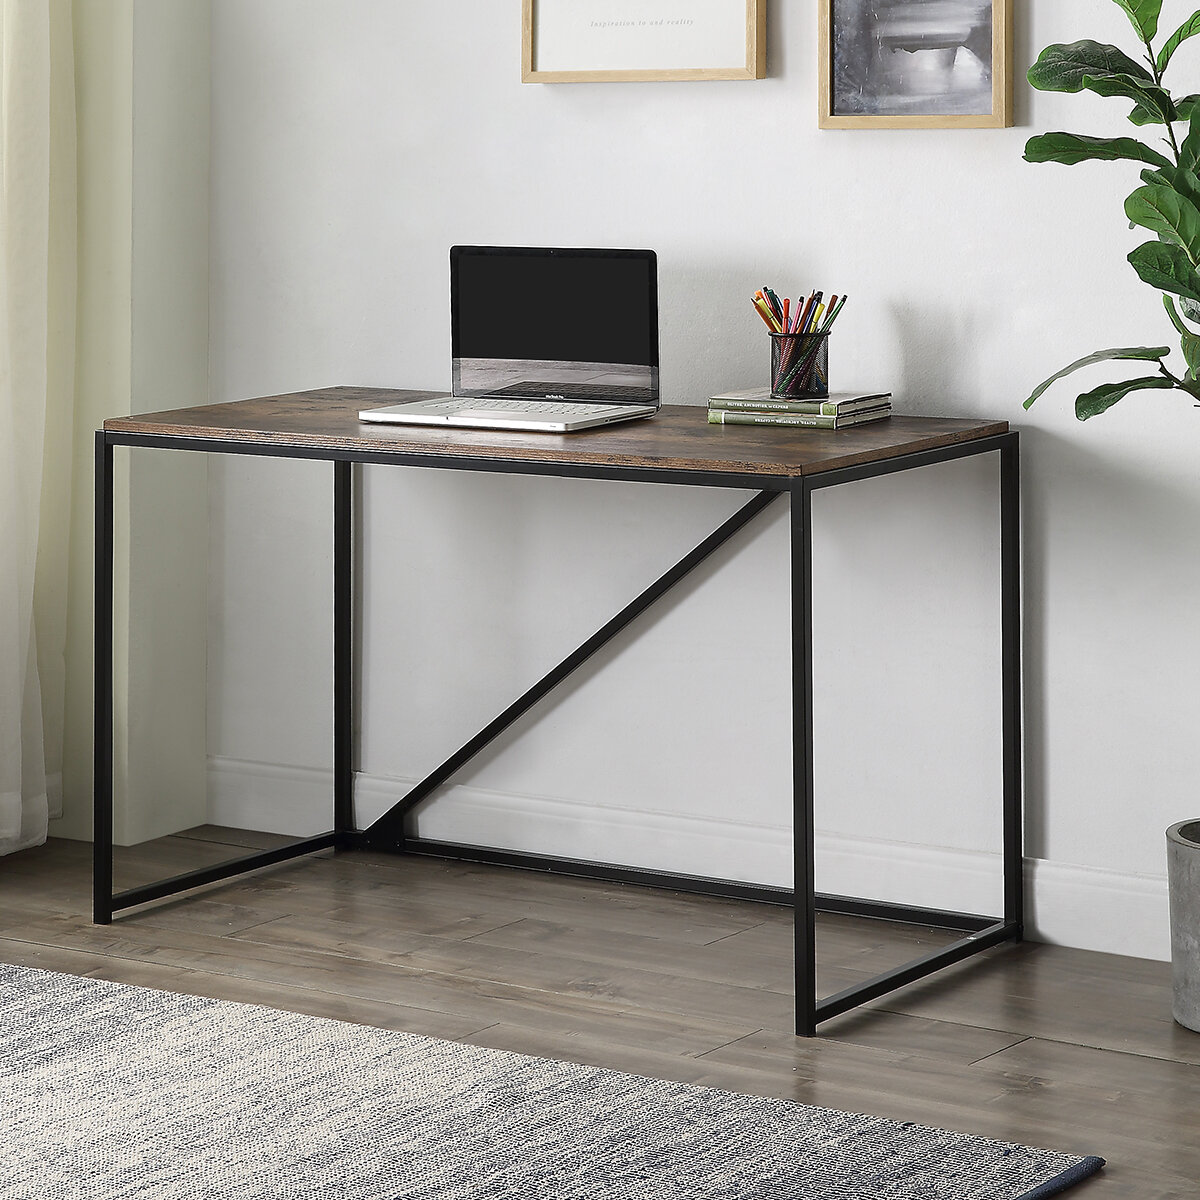 Image of: 17 Stories 46 Inch Home Office Desk Small Home Writing Desk Modern Minimalist Design Brown Wayfair Ca